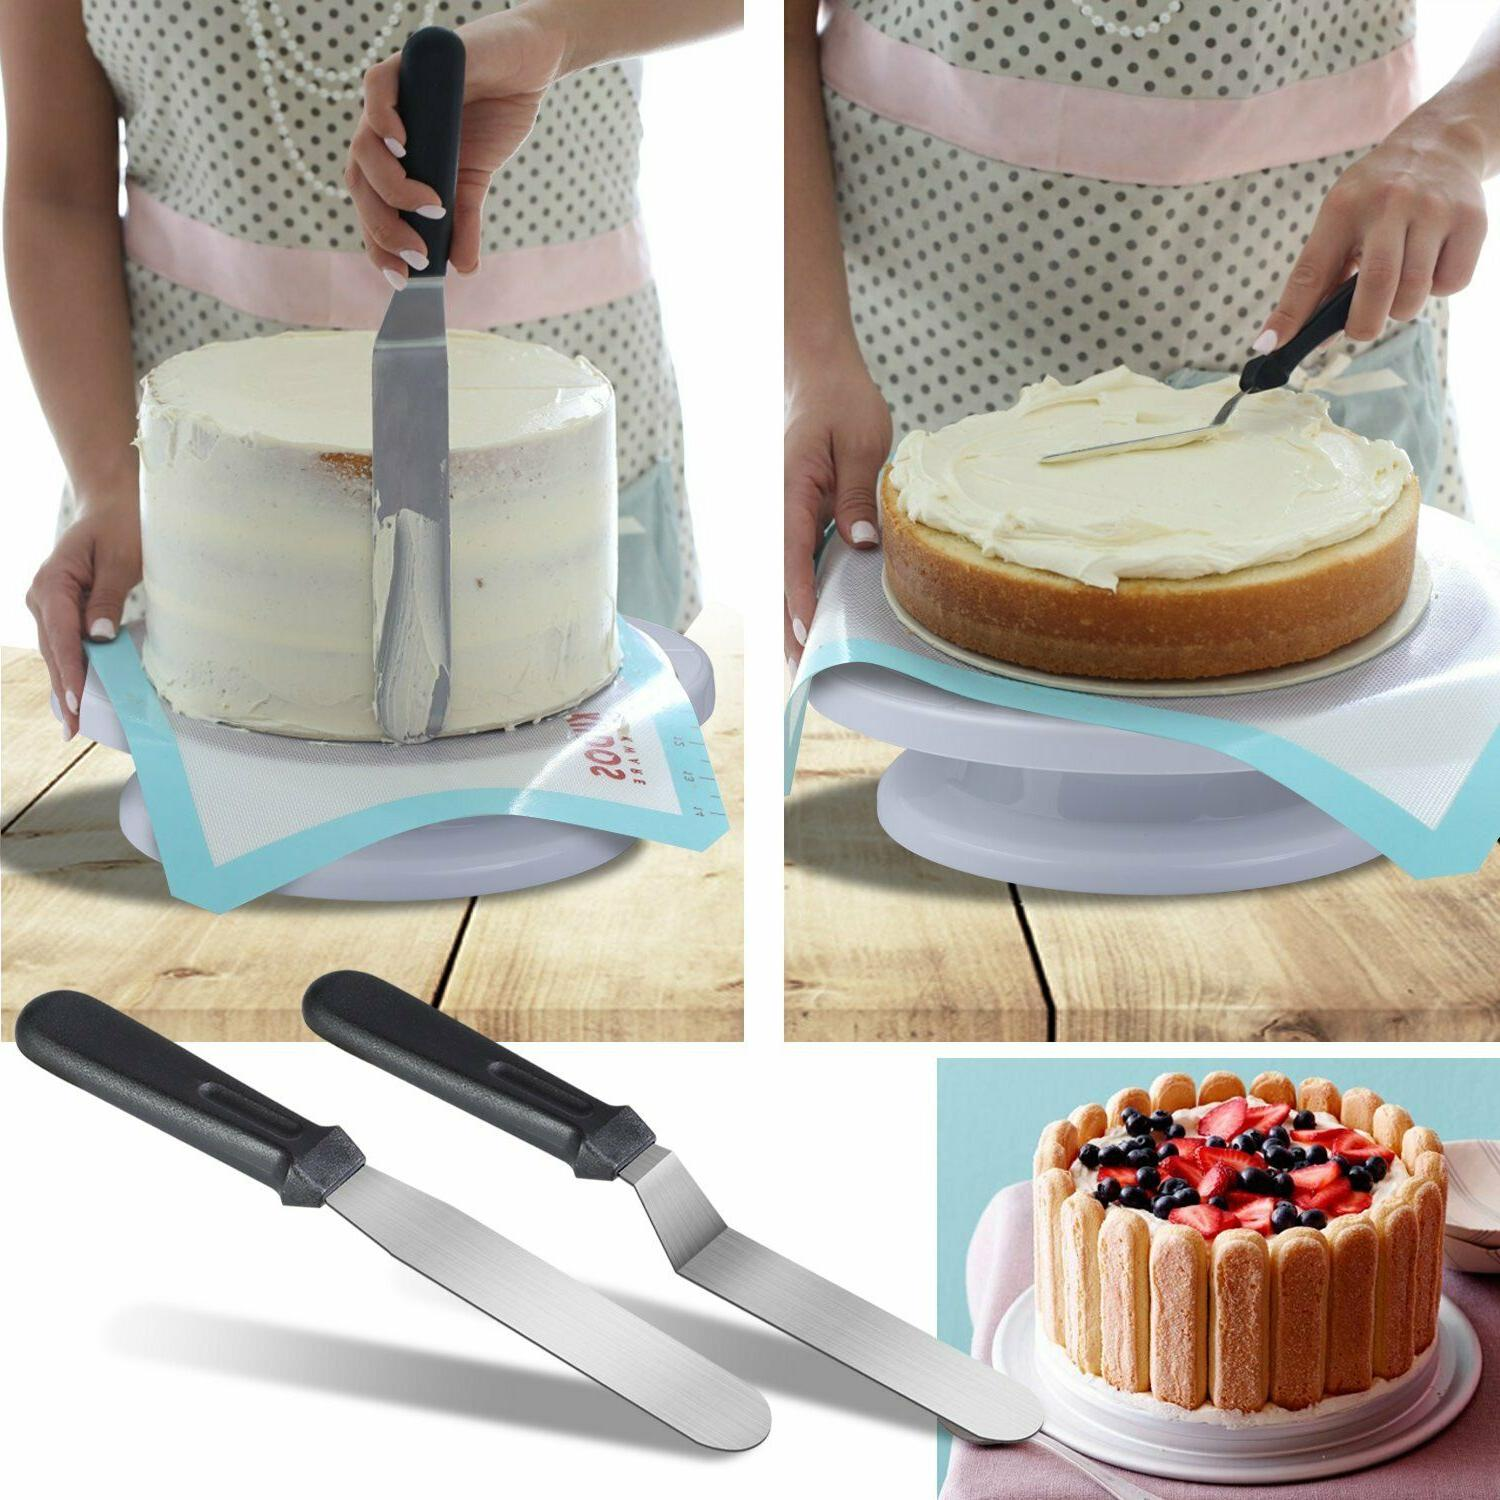 Cake Decorating Set Turntable Pan